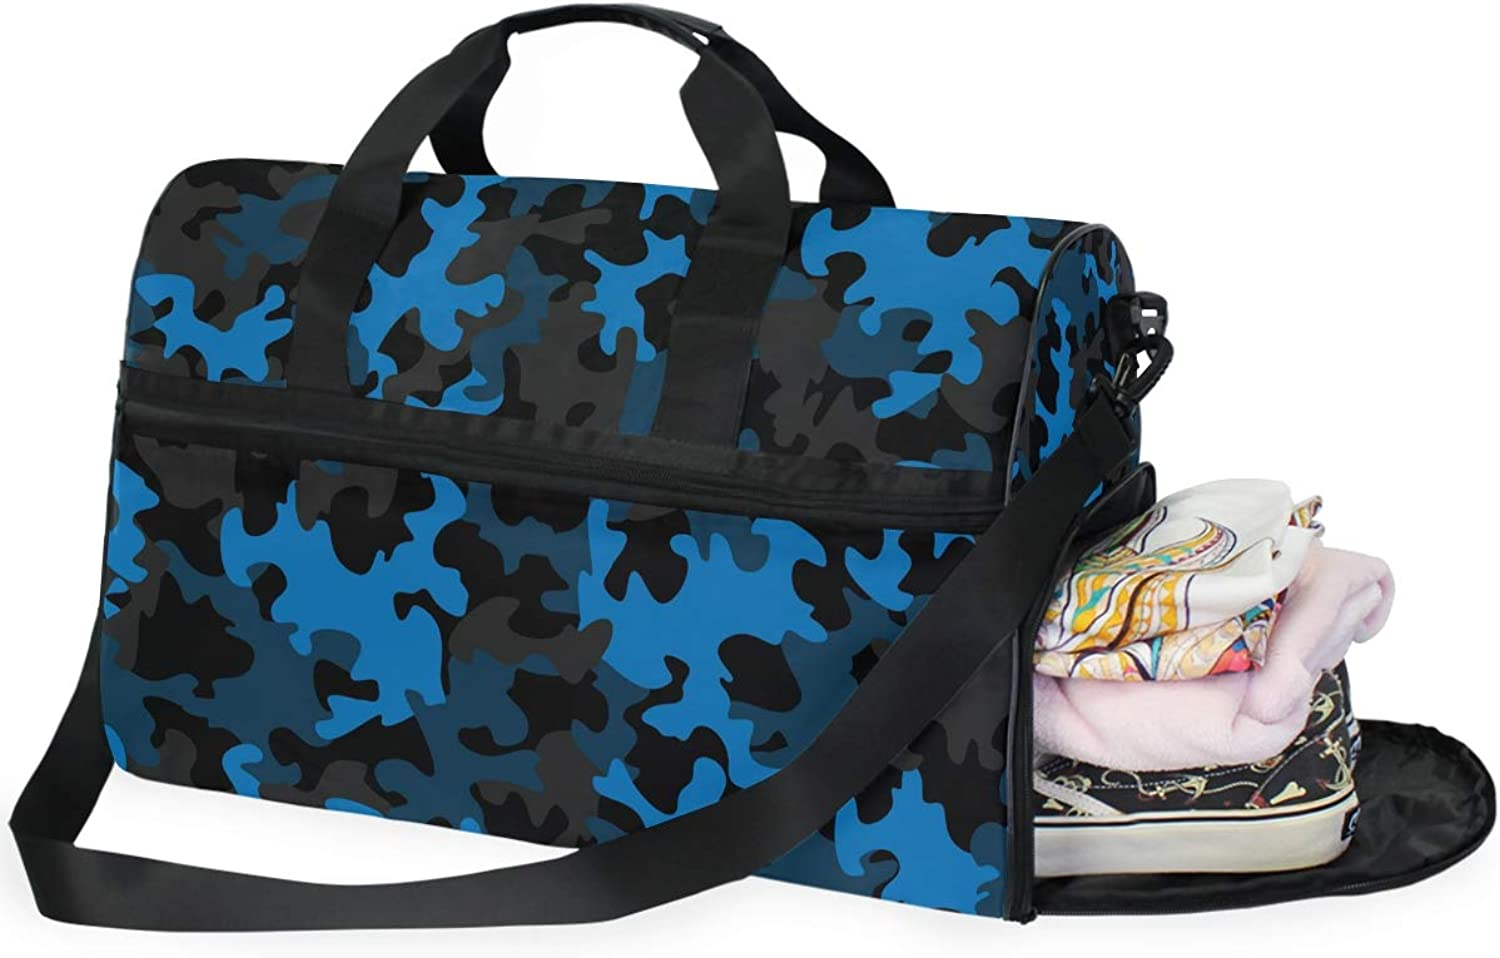 e0db8279bfa1f6 bluee Sports Gym Bag with shoes Compartment Travel Duffel Bag Men and Women  Camouflage for nzdfsc3596-Sporting goods